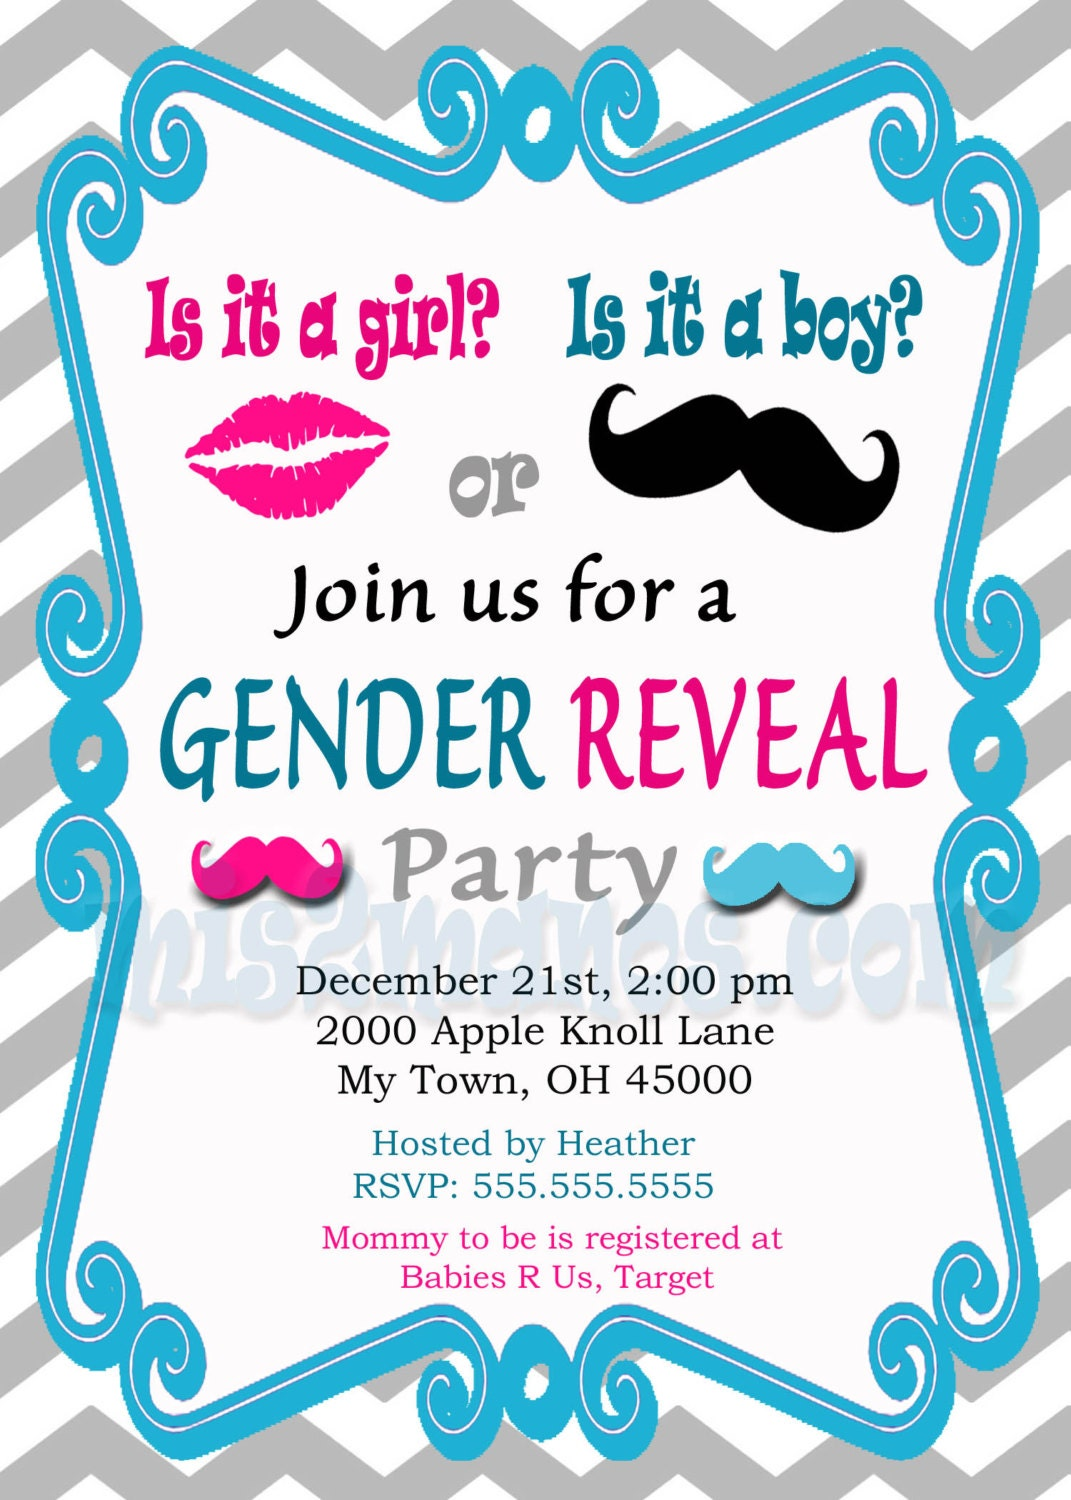 Astounding image for printable gender reveal invitations